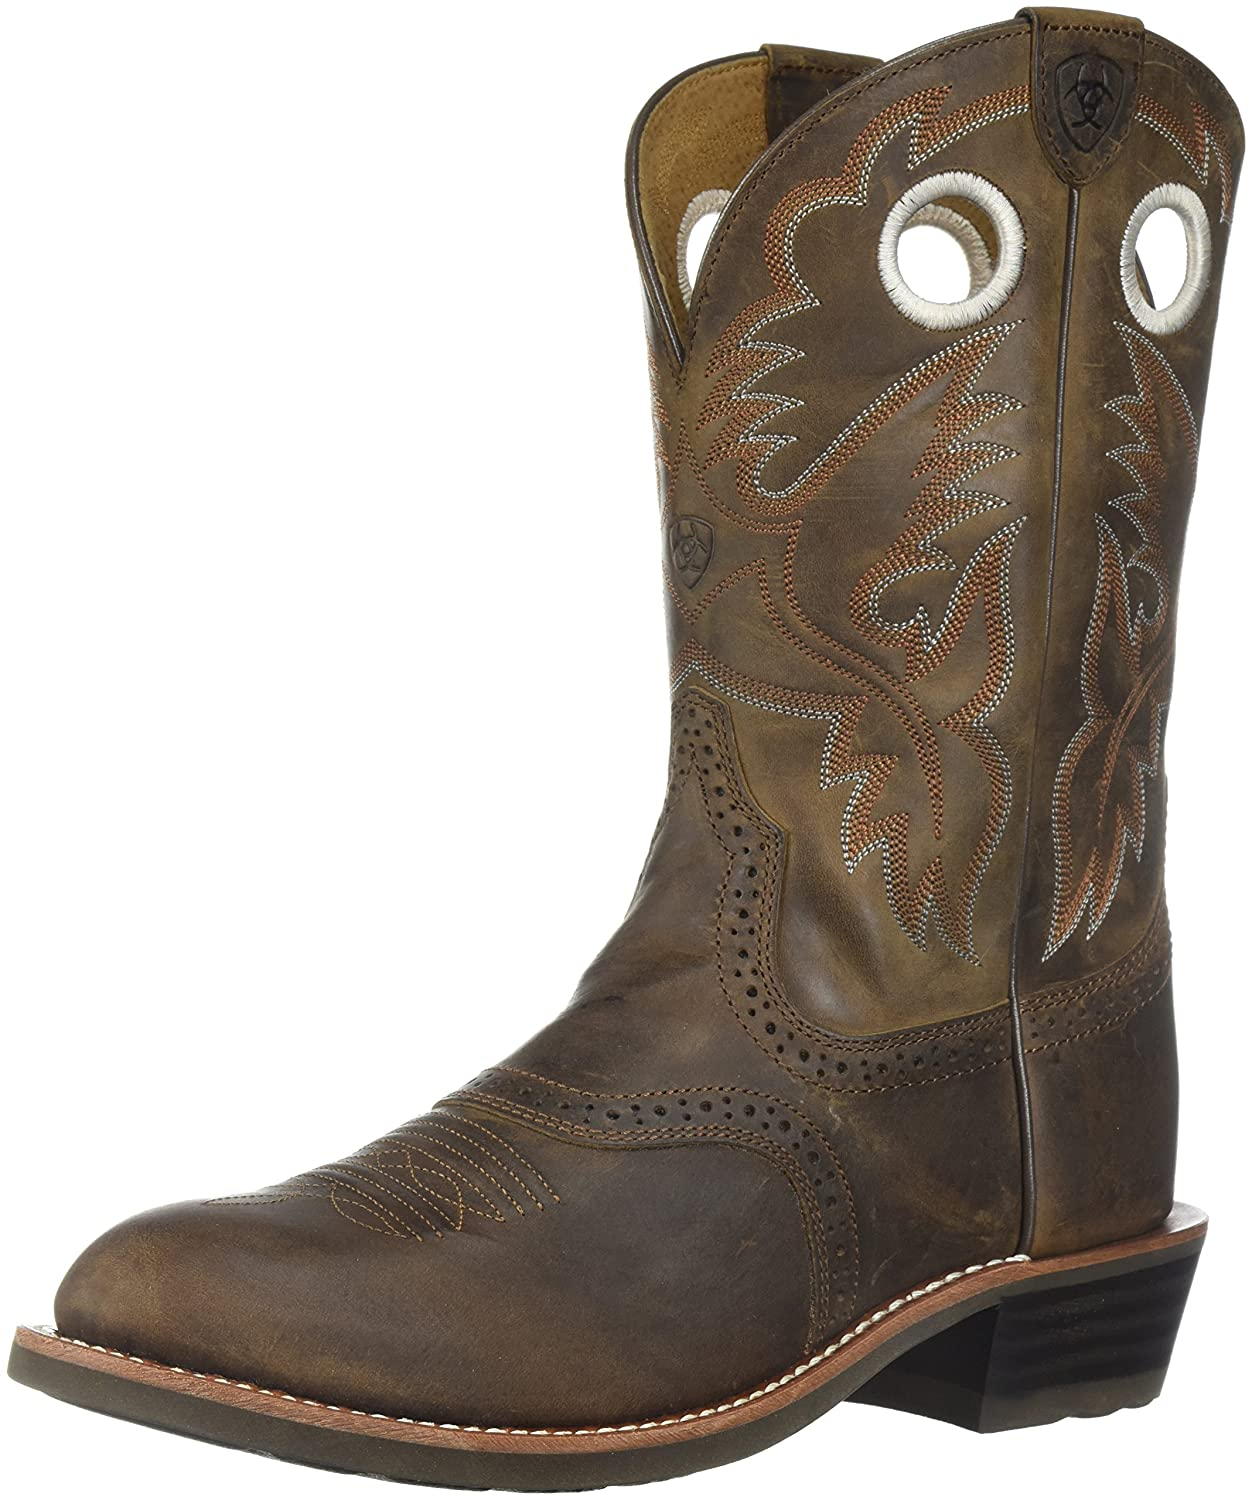 Ariat Women's Heritage Roughstock Western Boot B07CZ3S848 7.5 W US|Antique Brown